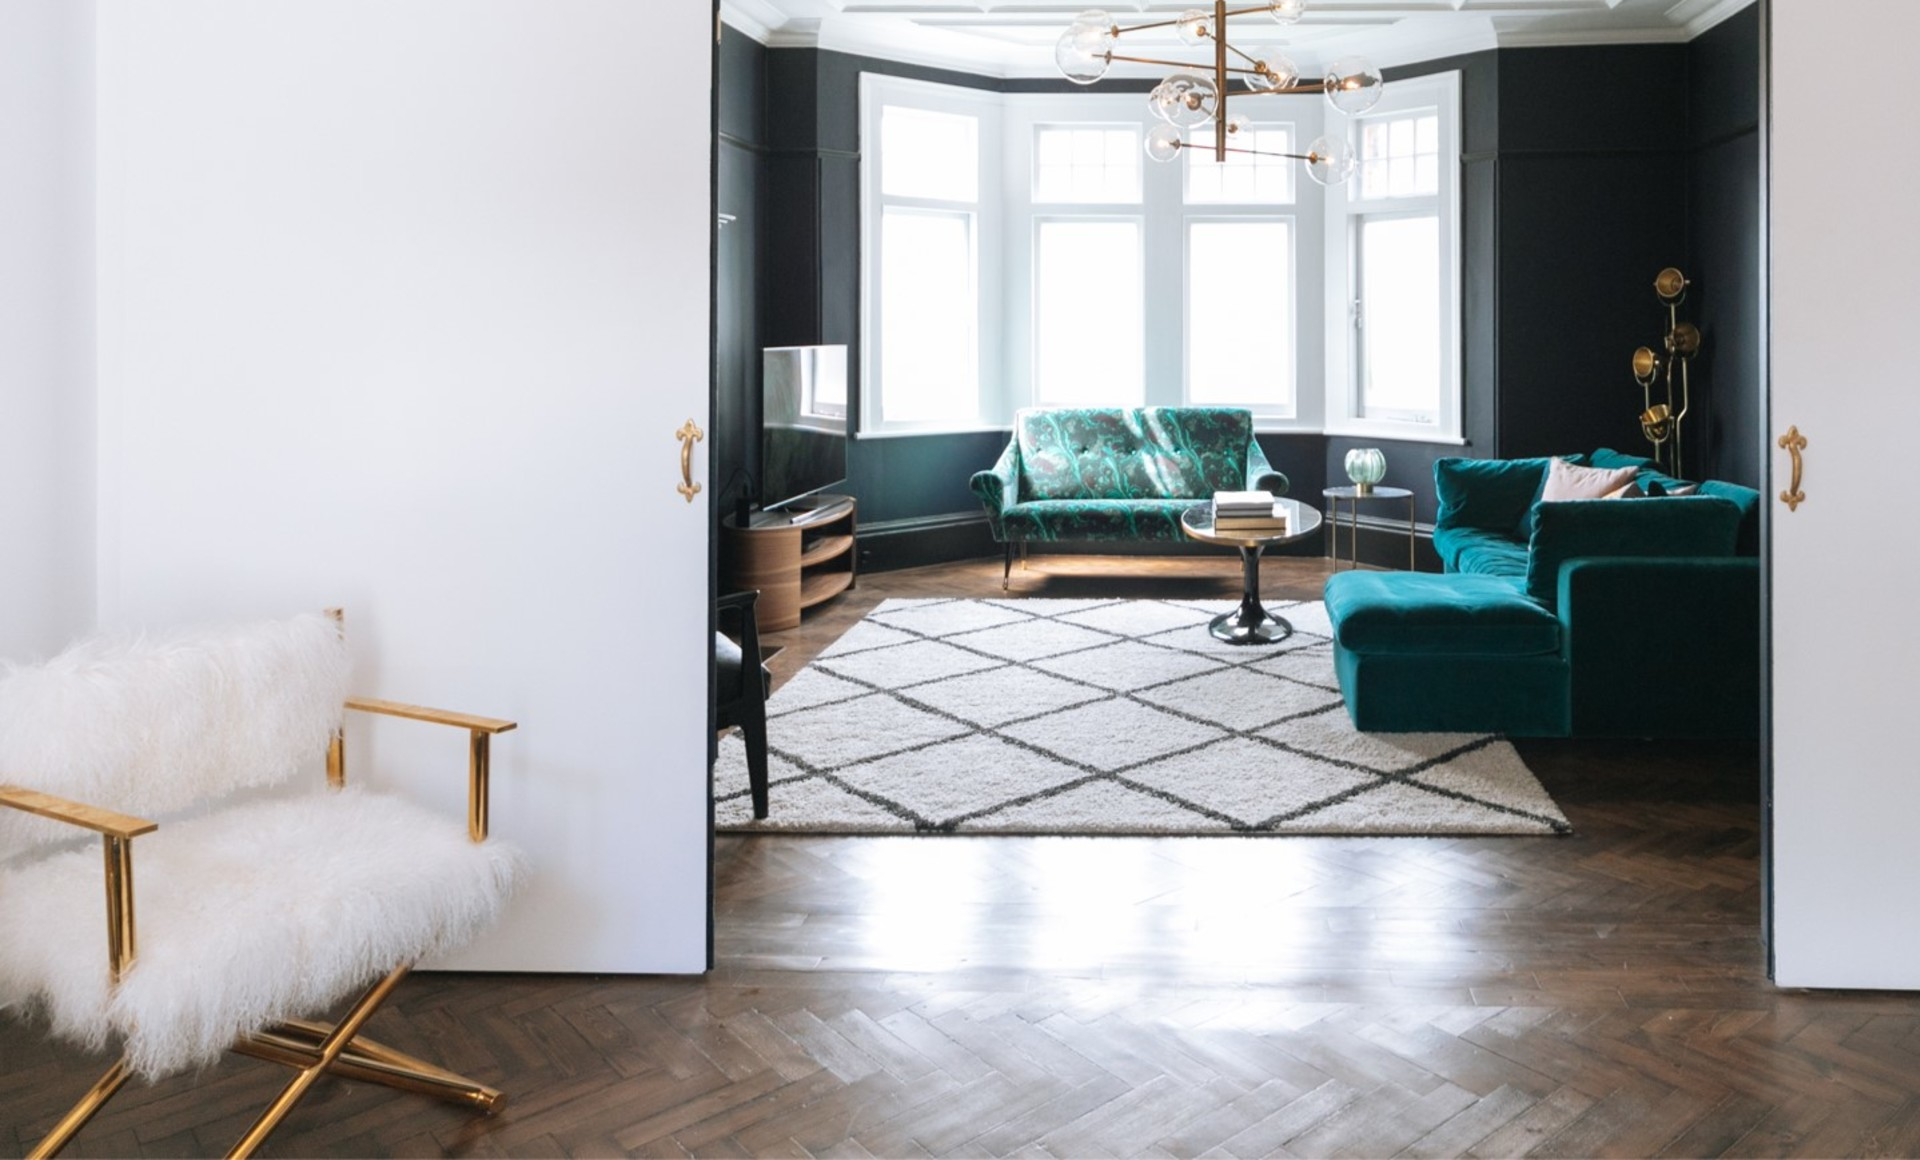 A fur statement directors chair in front of a dramatic and dark living room with deep teal velvet sofas and geometric rug